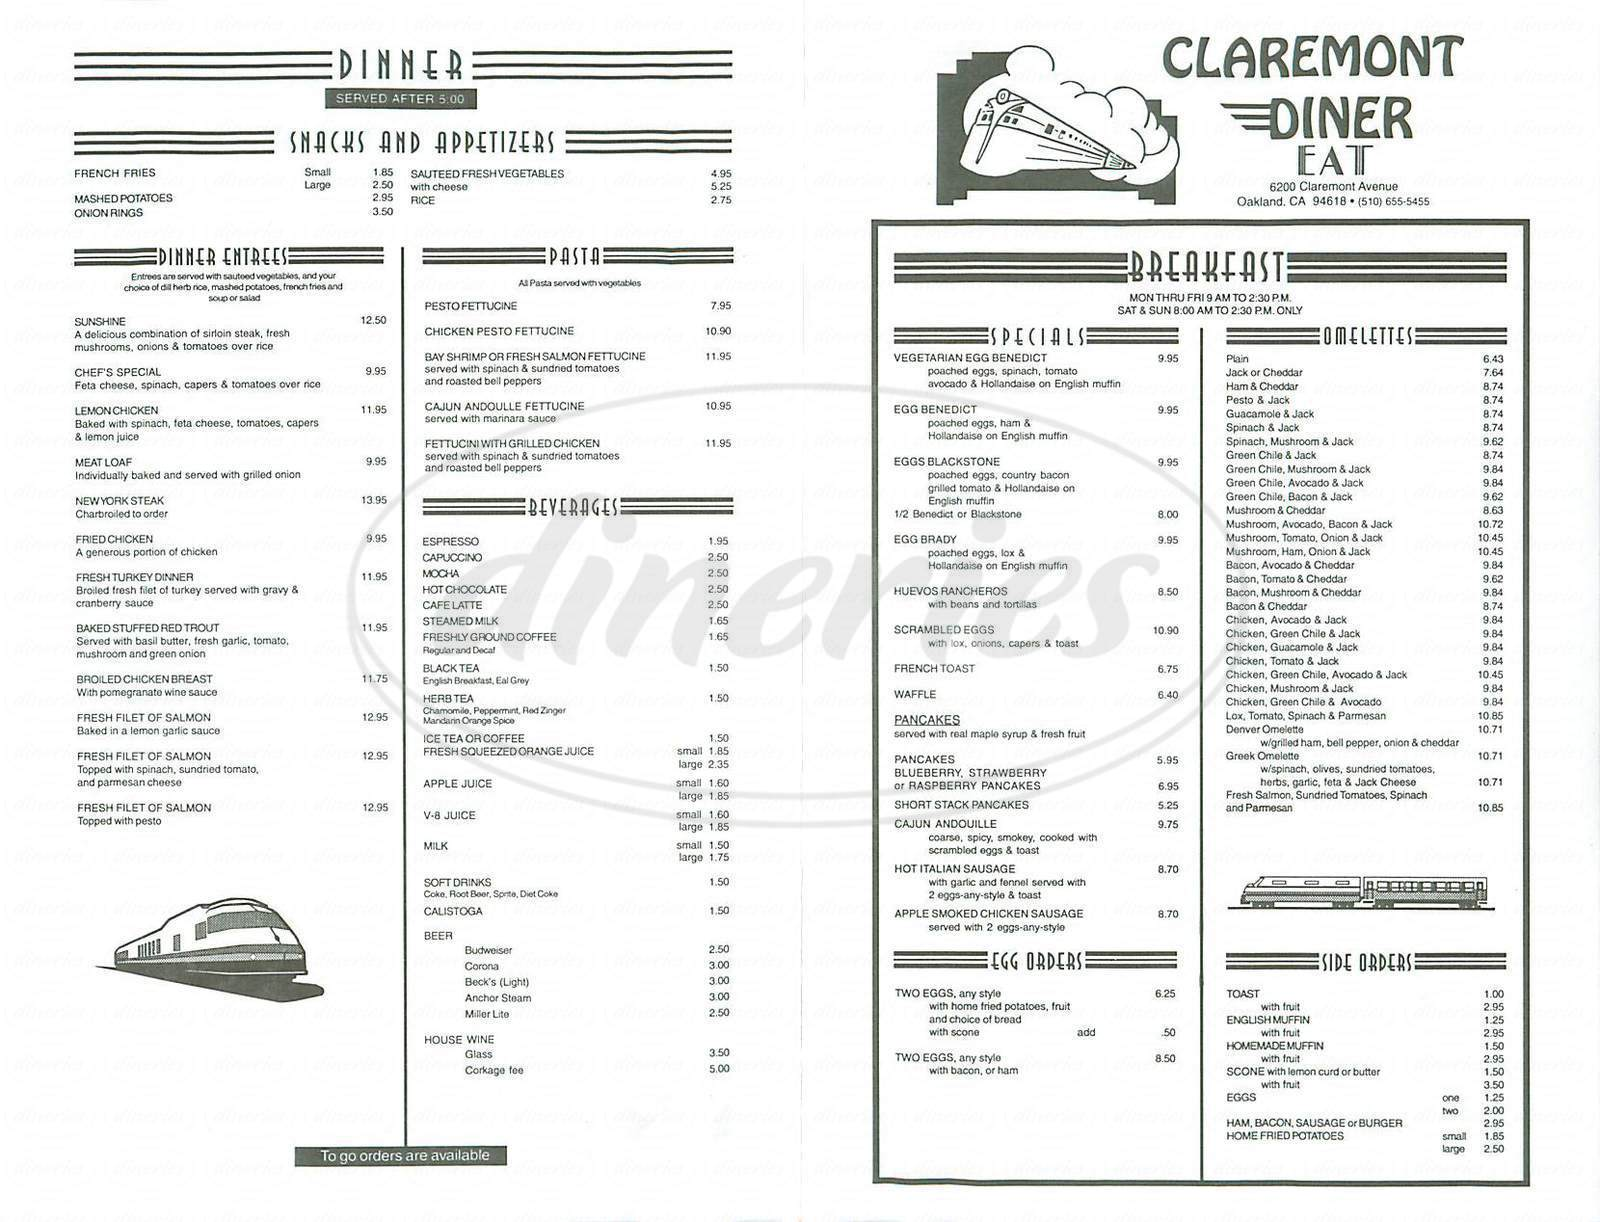 menu for Claremont Diner